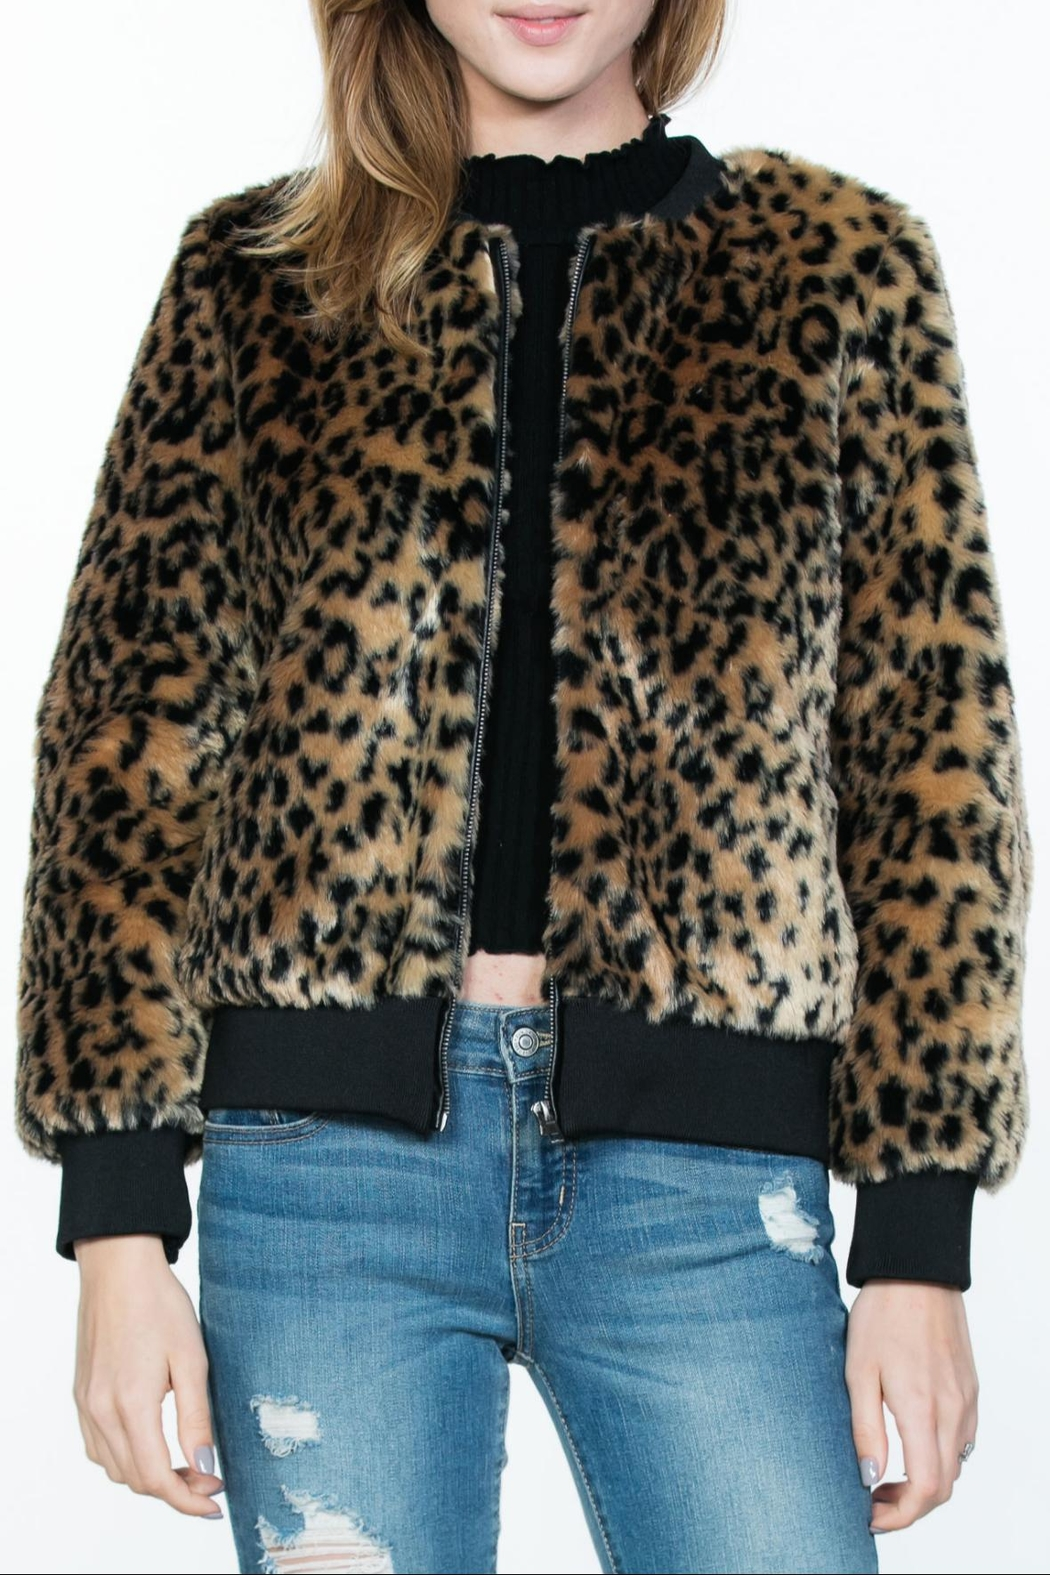 Ark & Co. Leopard Animal-Print Jacket - Main Image